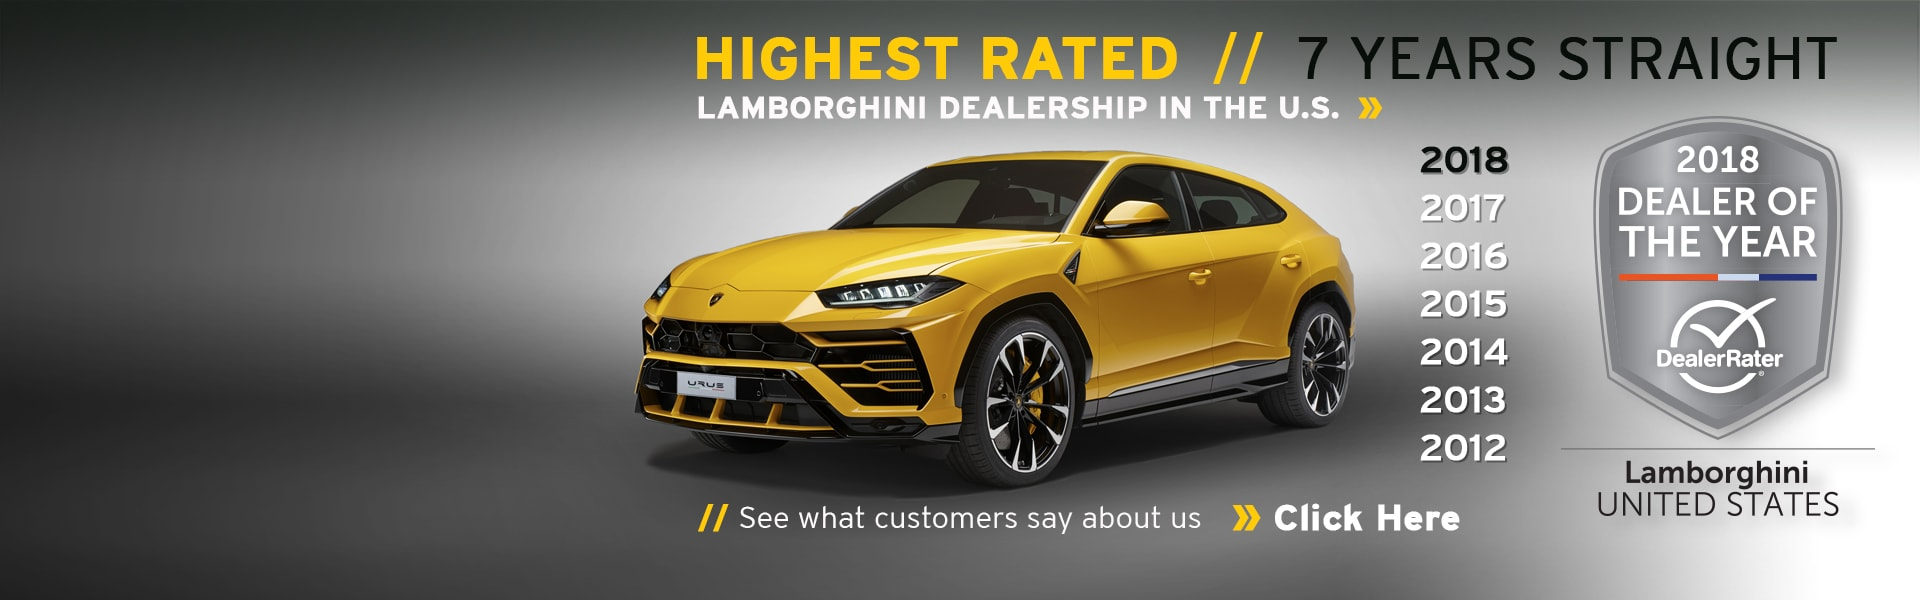 Lamborghini Dallas: Lamborghini Dealership near Dallas TX | Richardson